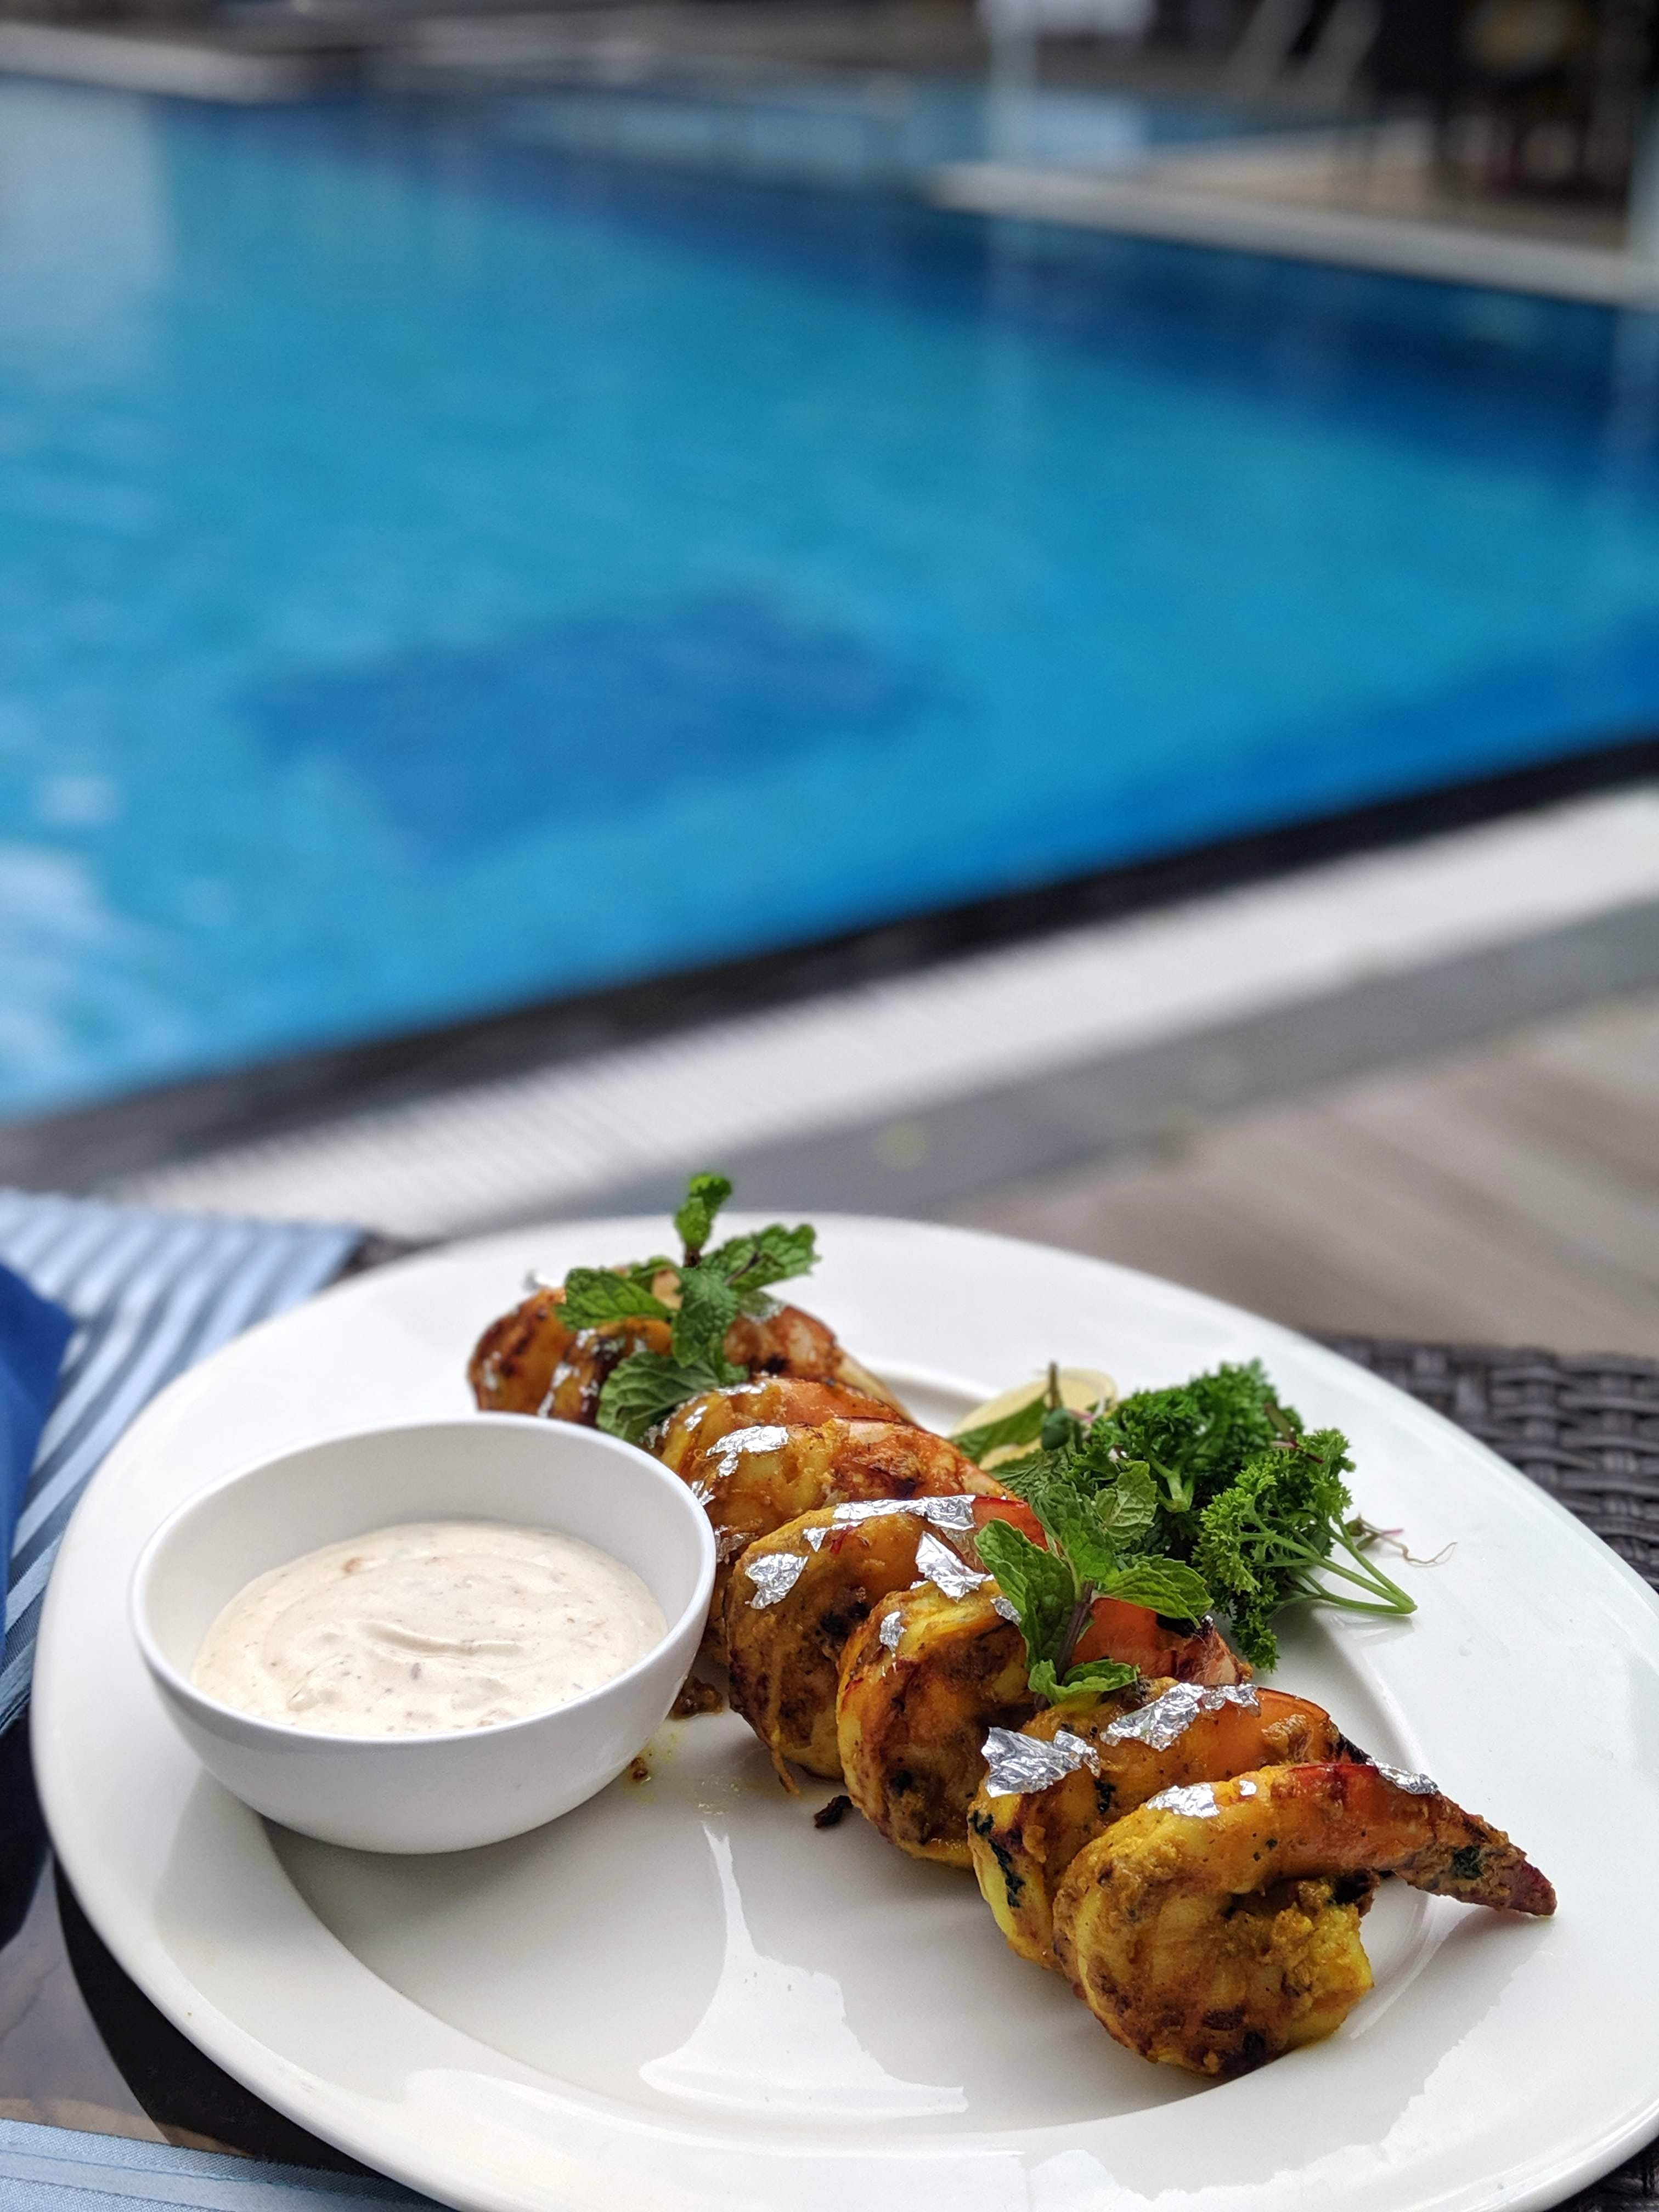 Buckle Up For Some Scrumptious Authentic Indian Meal By The Poolside